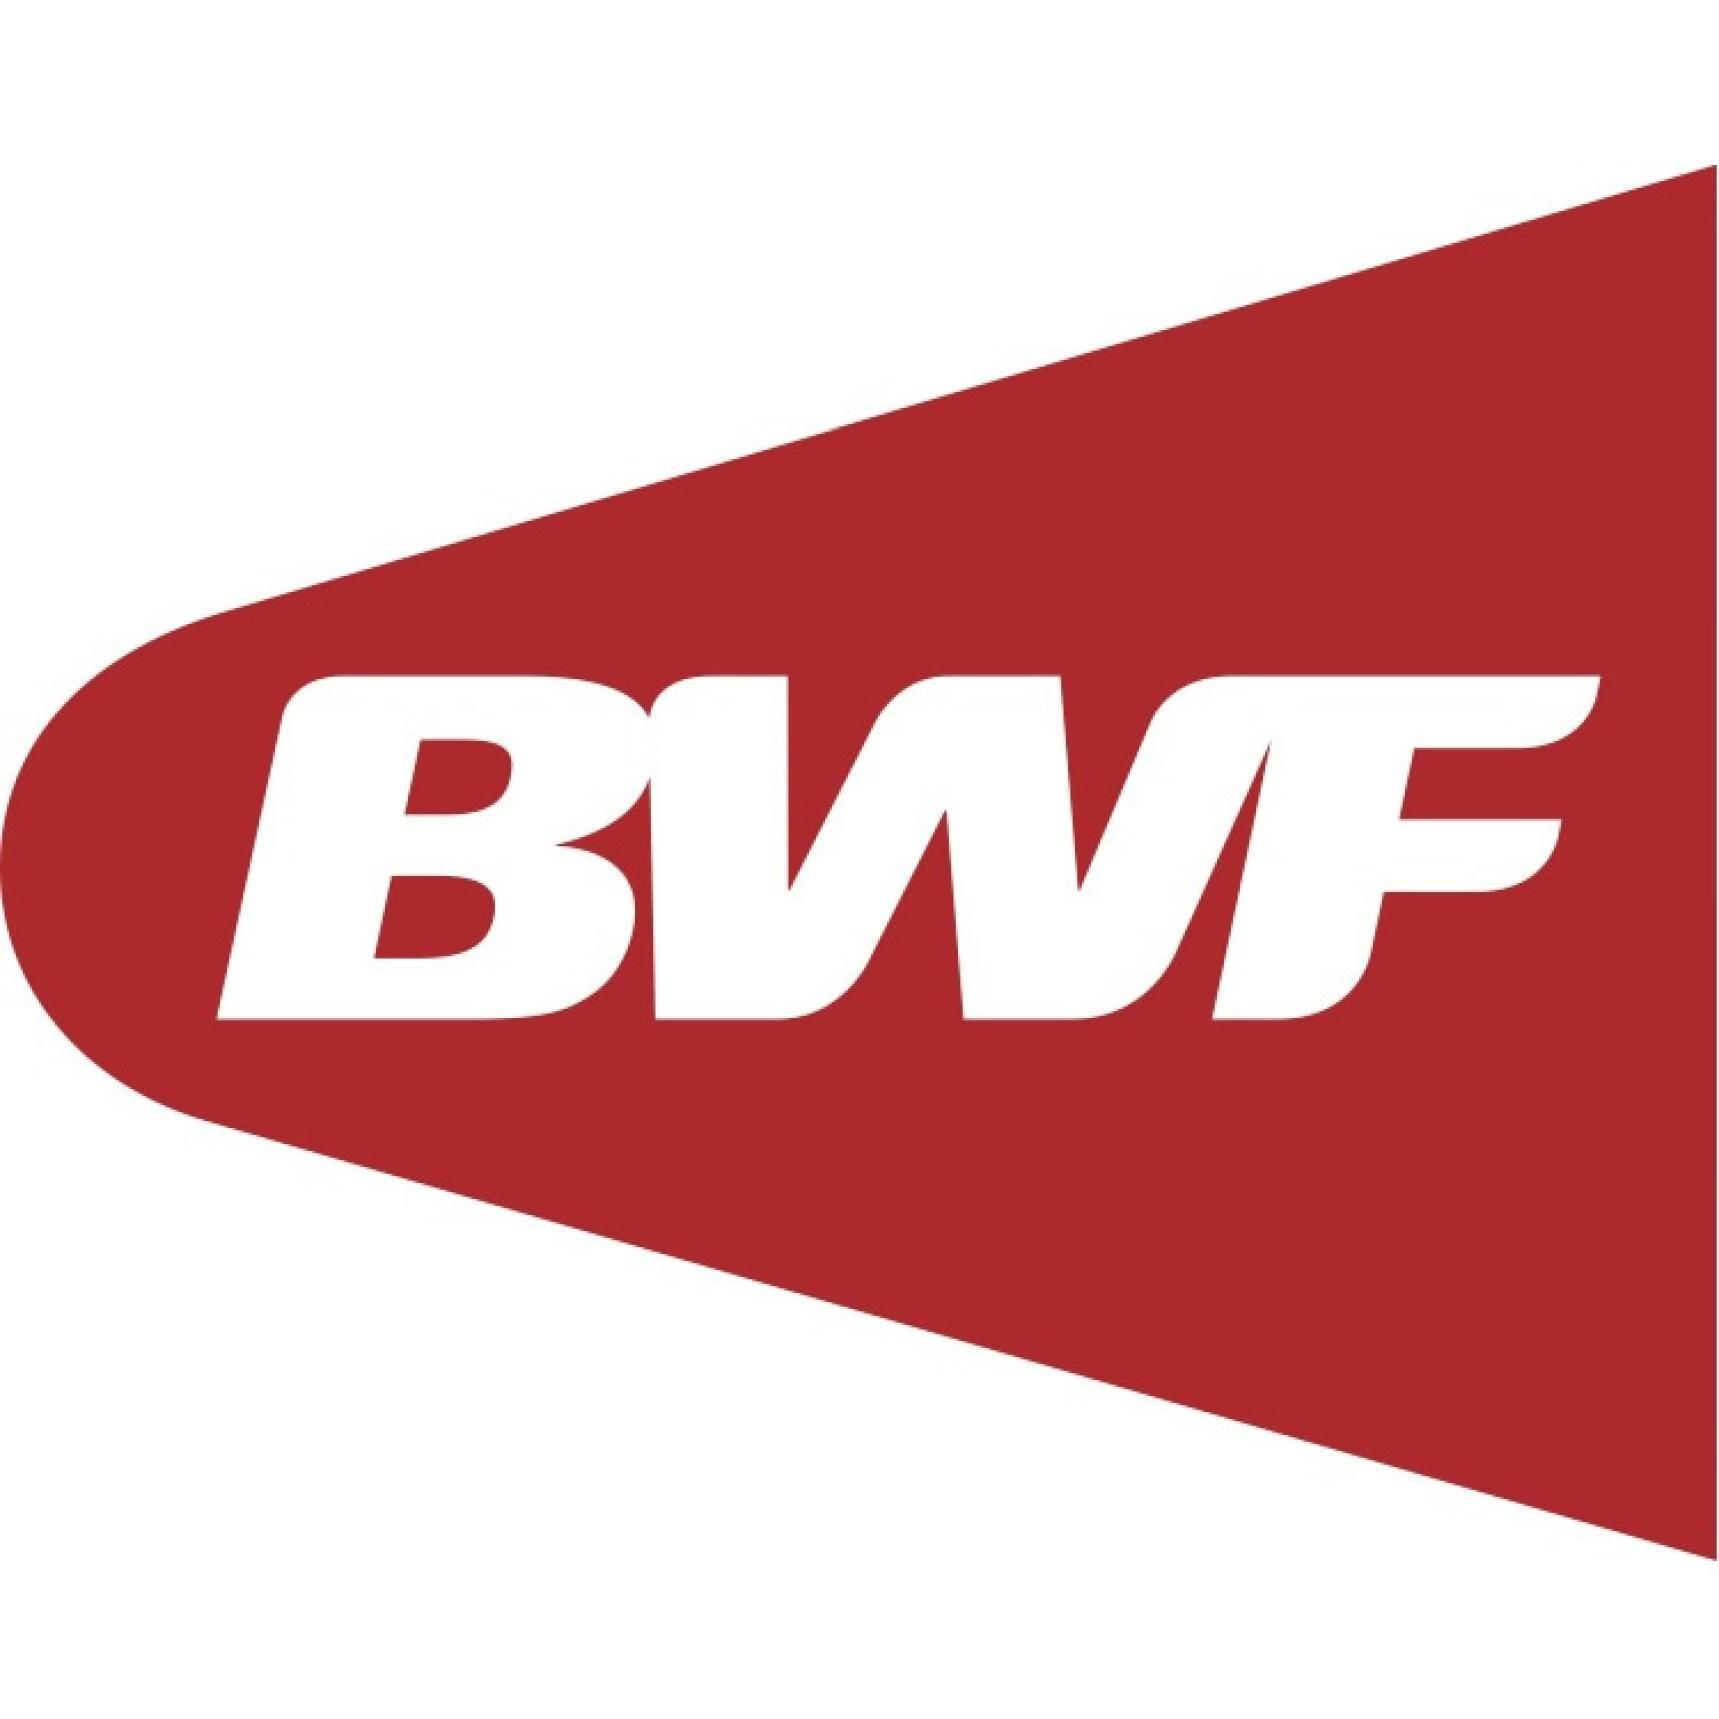 Badminton World Federation (BWF) Logo [EPS File] Vector EPS Free Download, Logo, Icons, Brand Em ...